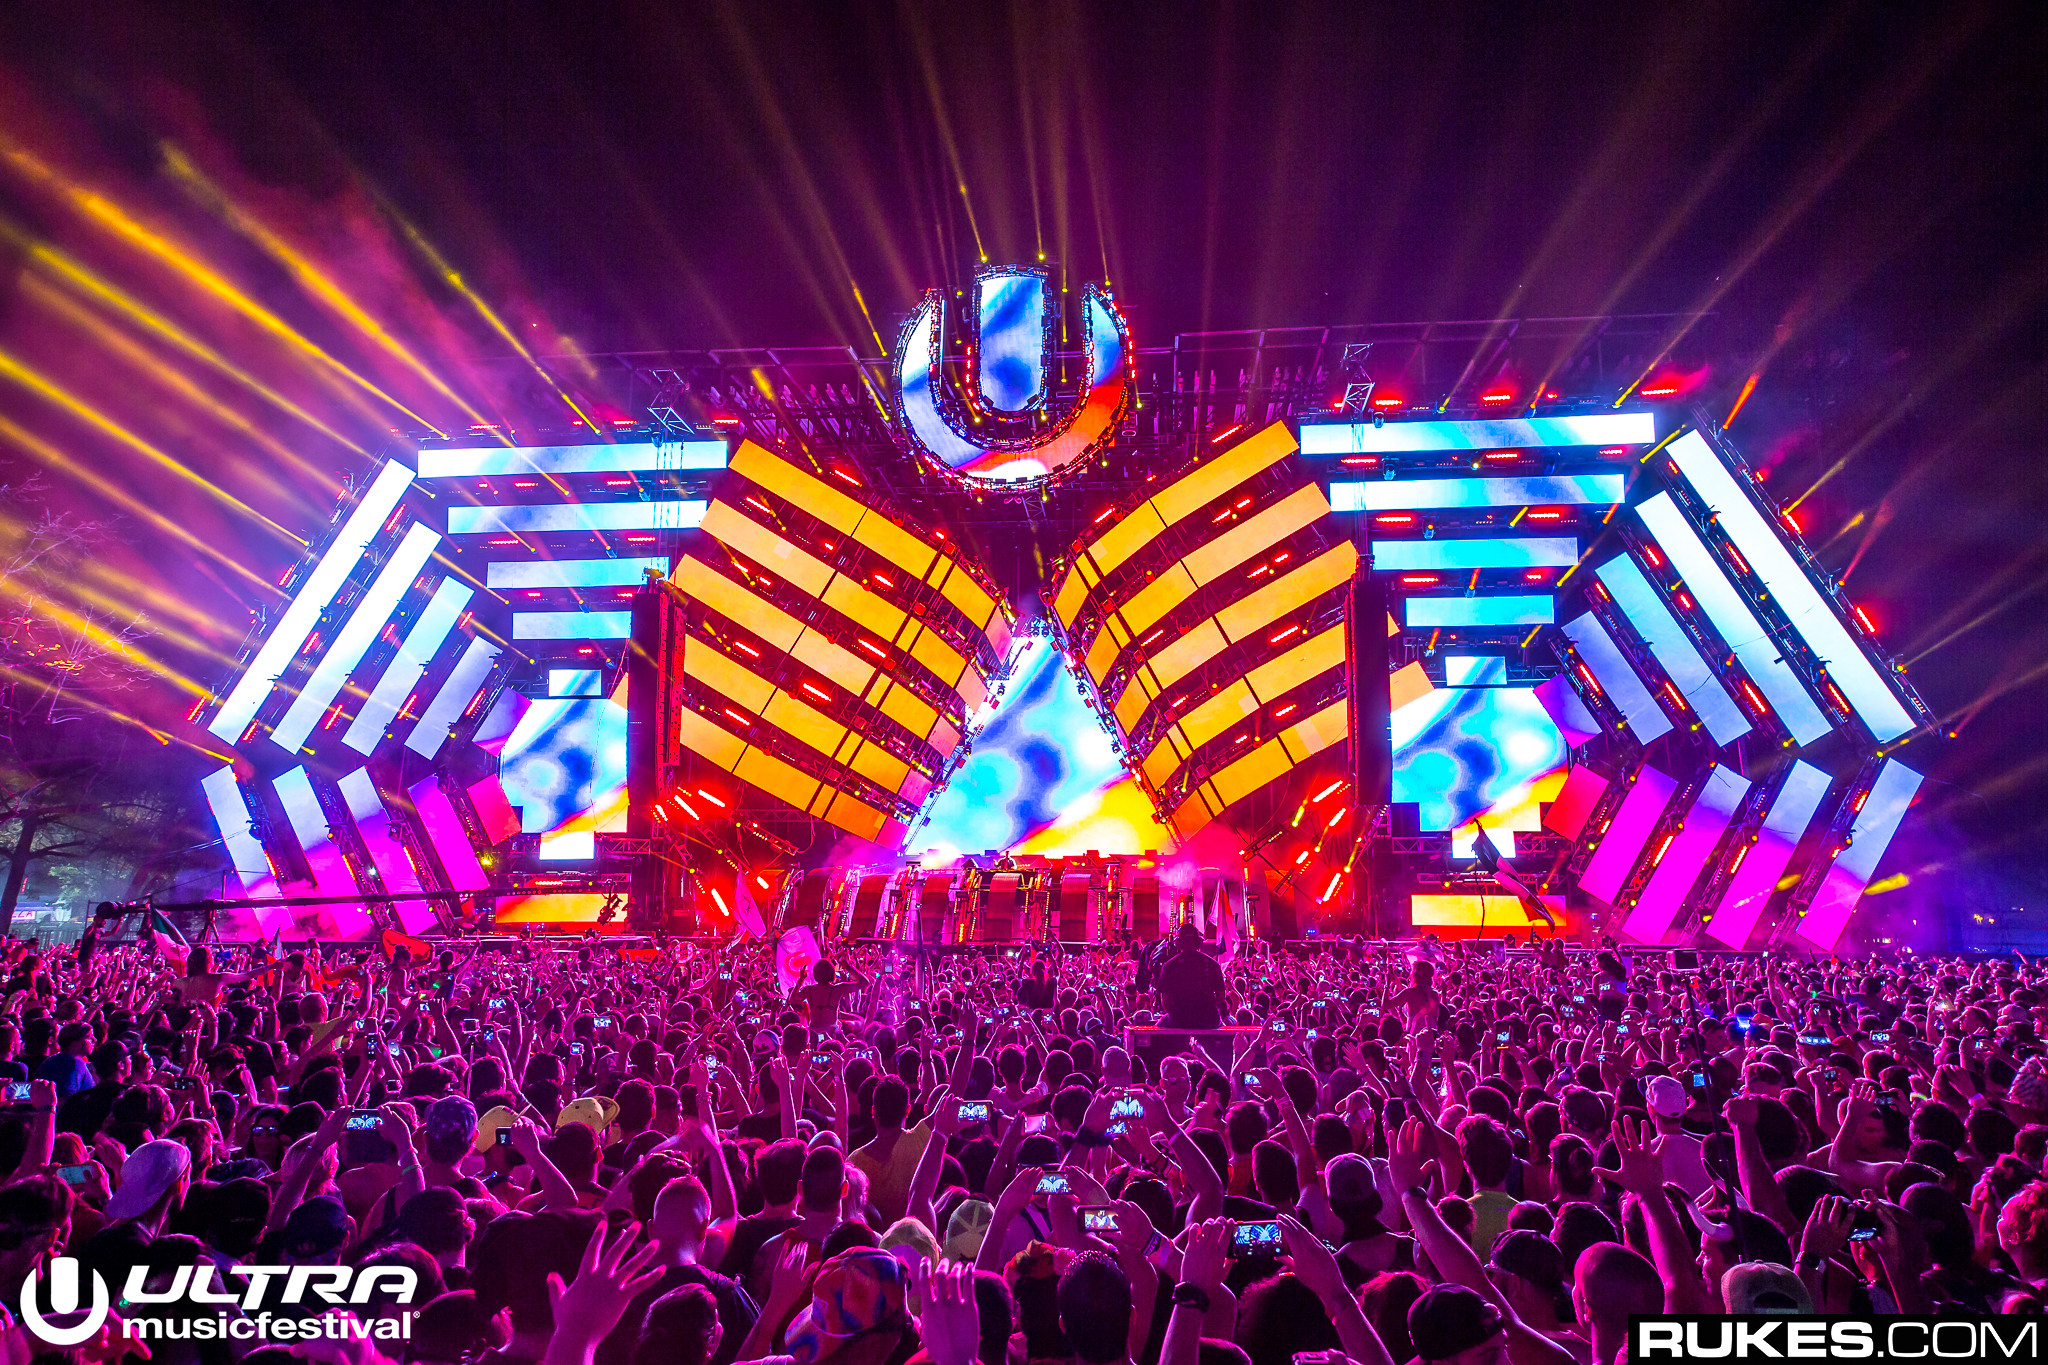 25 Massive Photos That Capture The Magnitude of Ultra Music ...